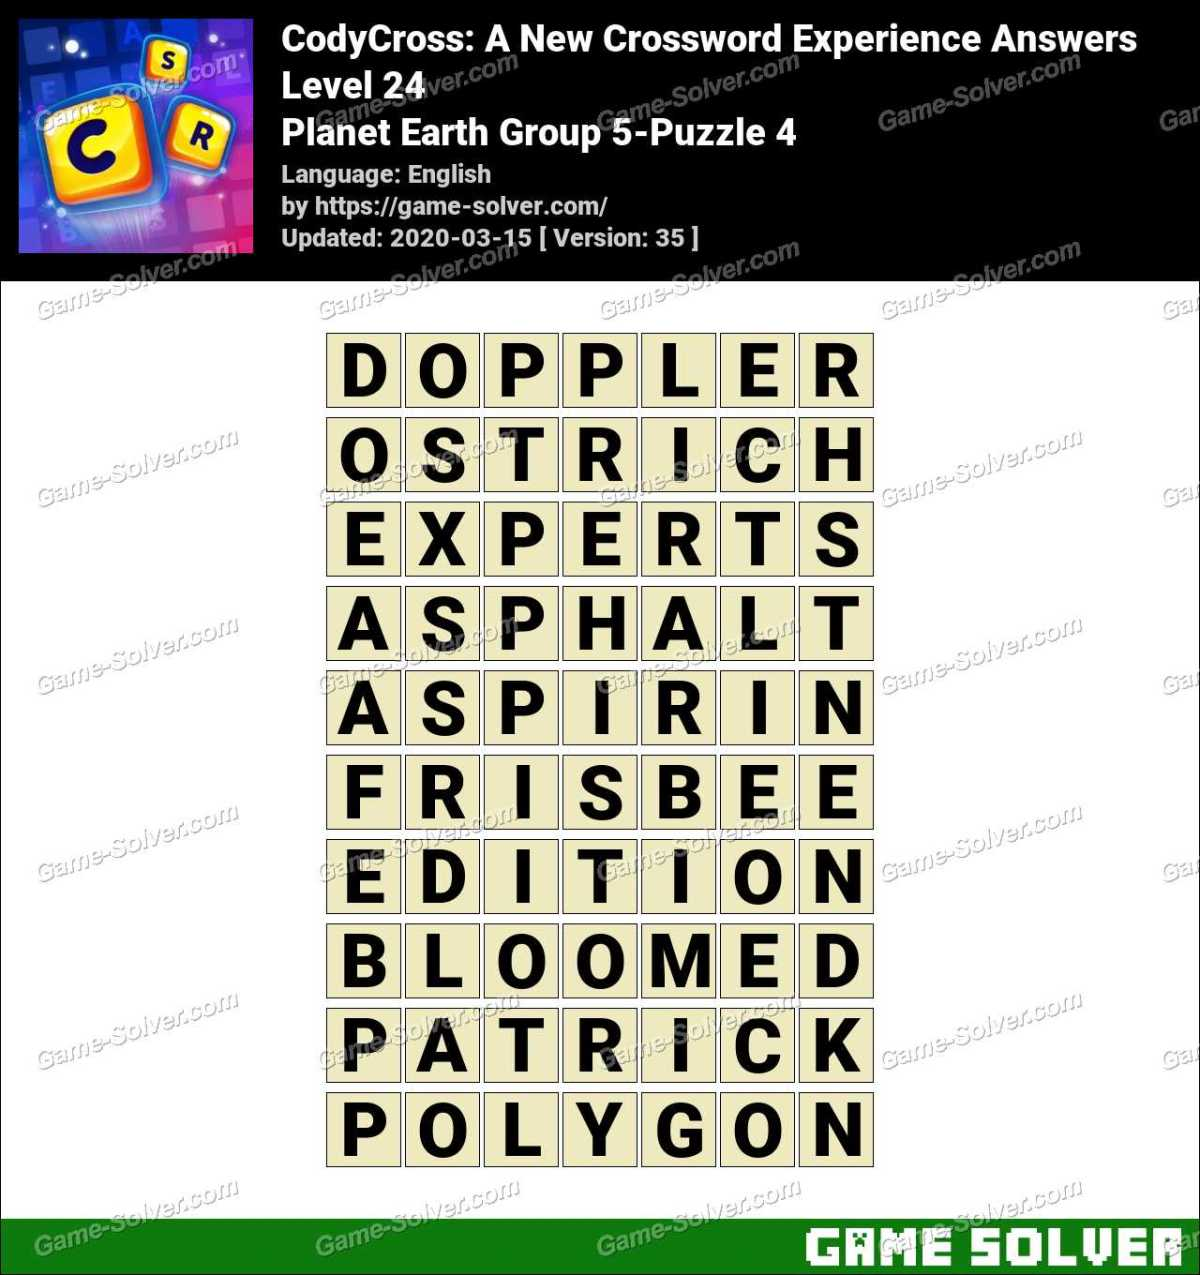 CodyCross Planet Earth Group 5-Puzzle 4 Answers